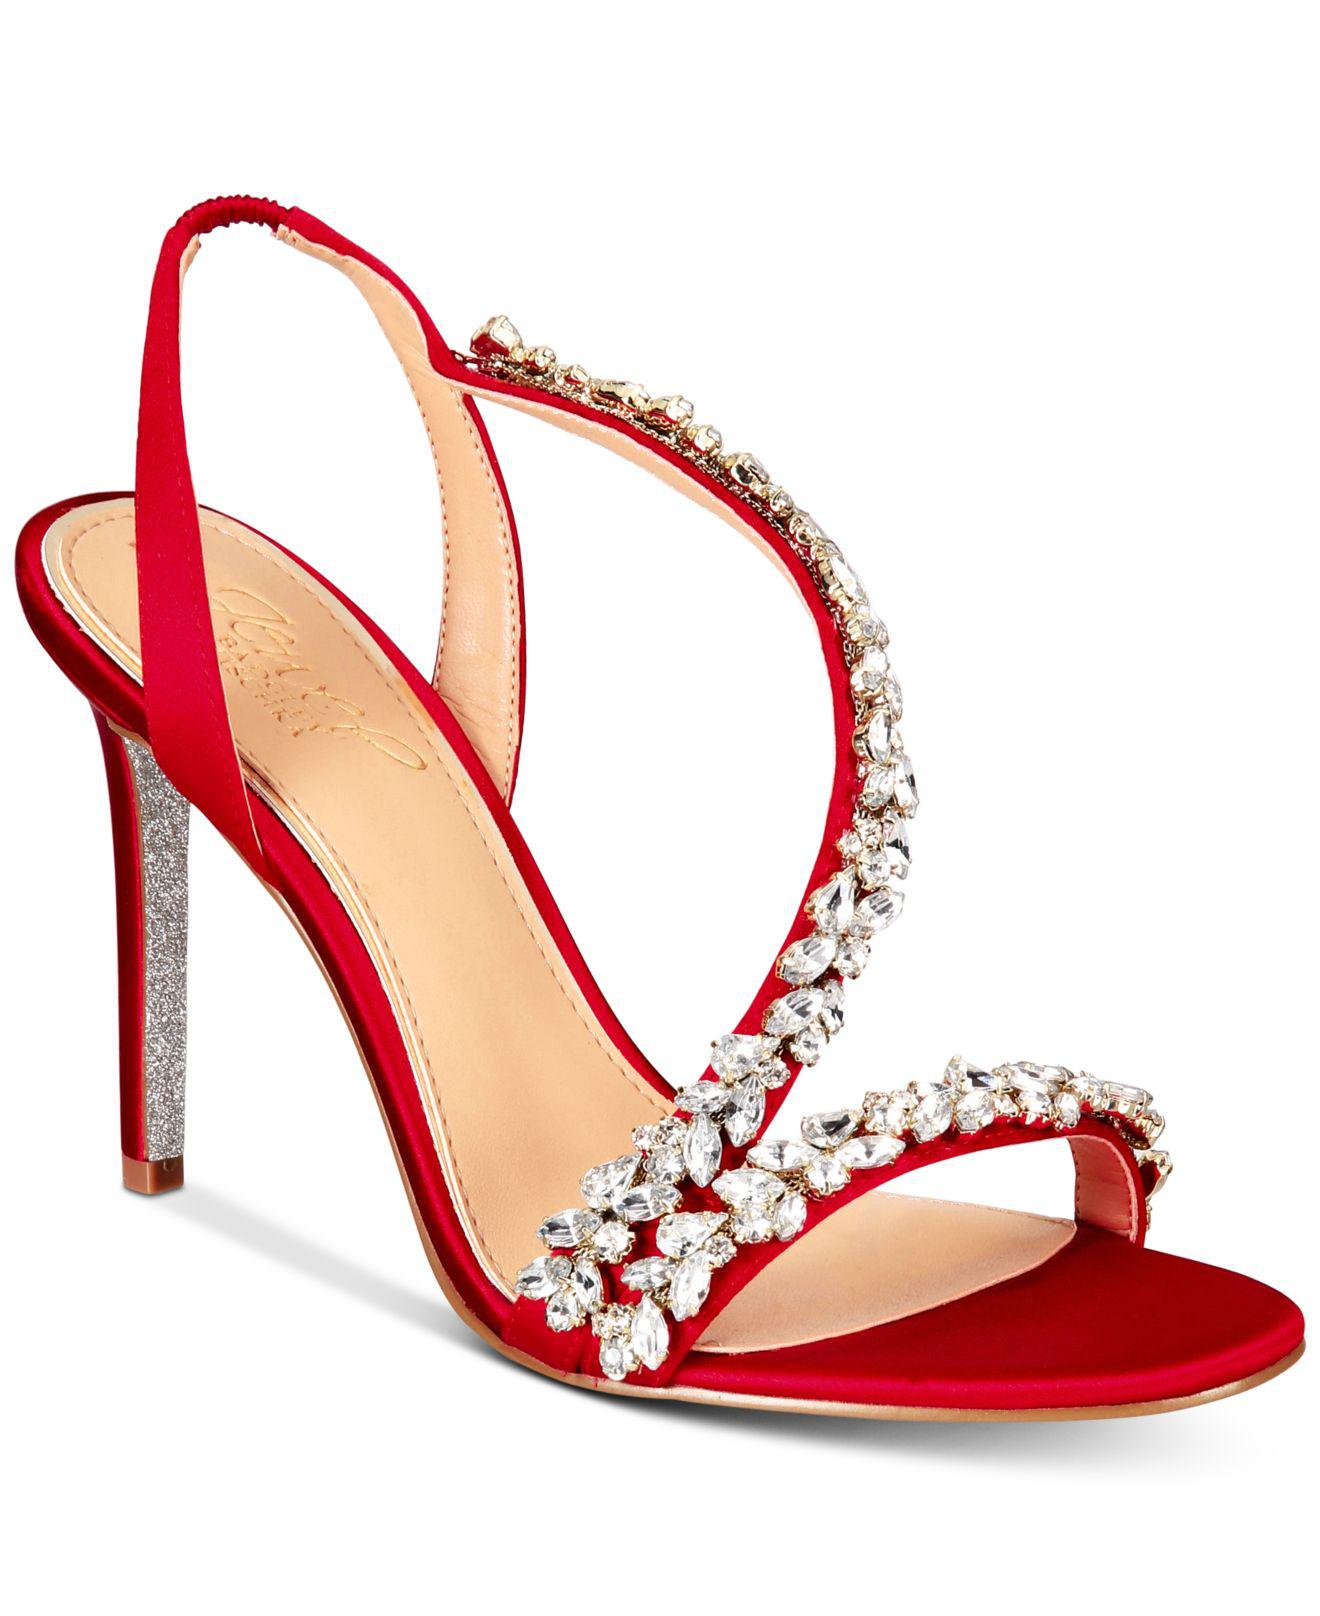 144d58d73a8 Lyst - Badgley Mischka Java Embellished Evening Sandals in Red